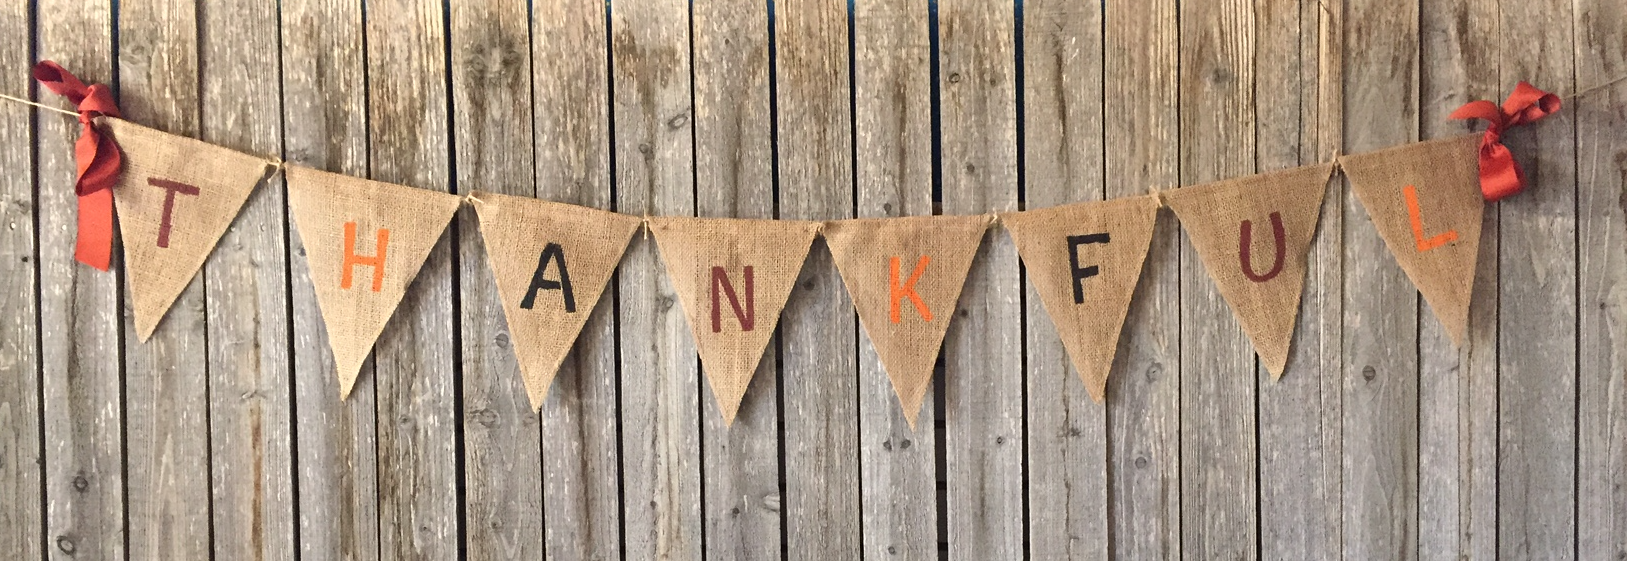 Thanksgiving Day Homemade DIY Banner